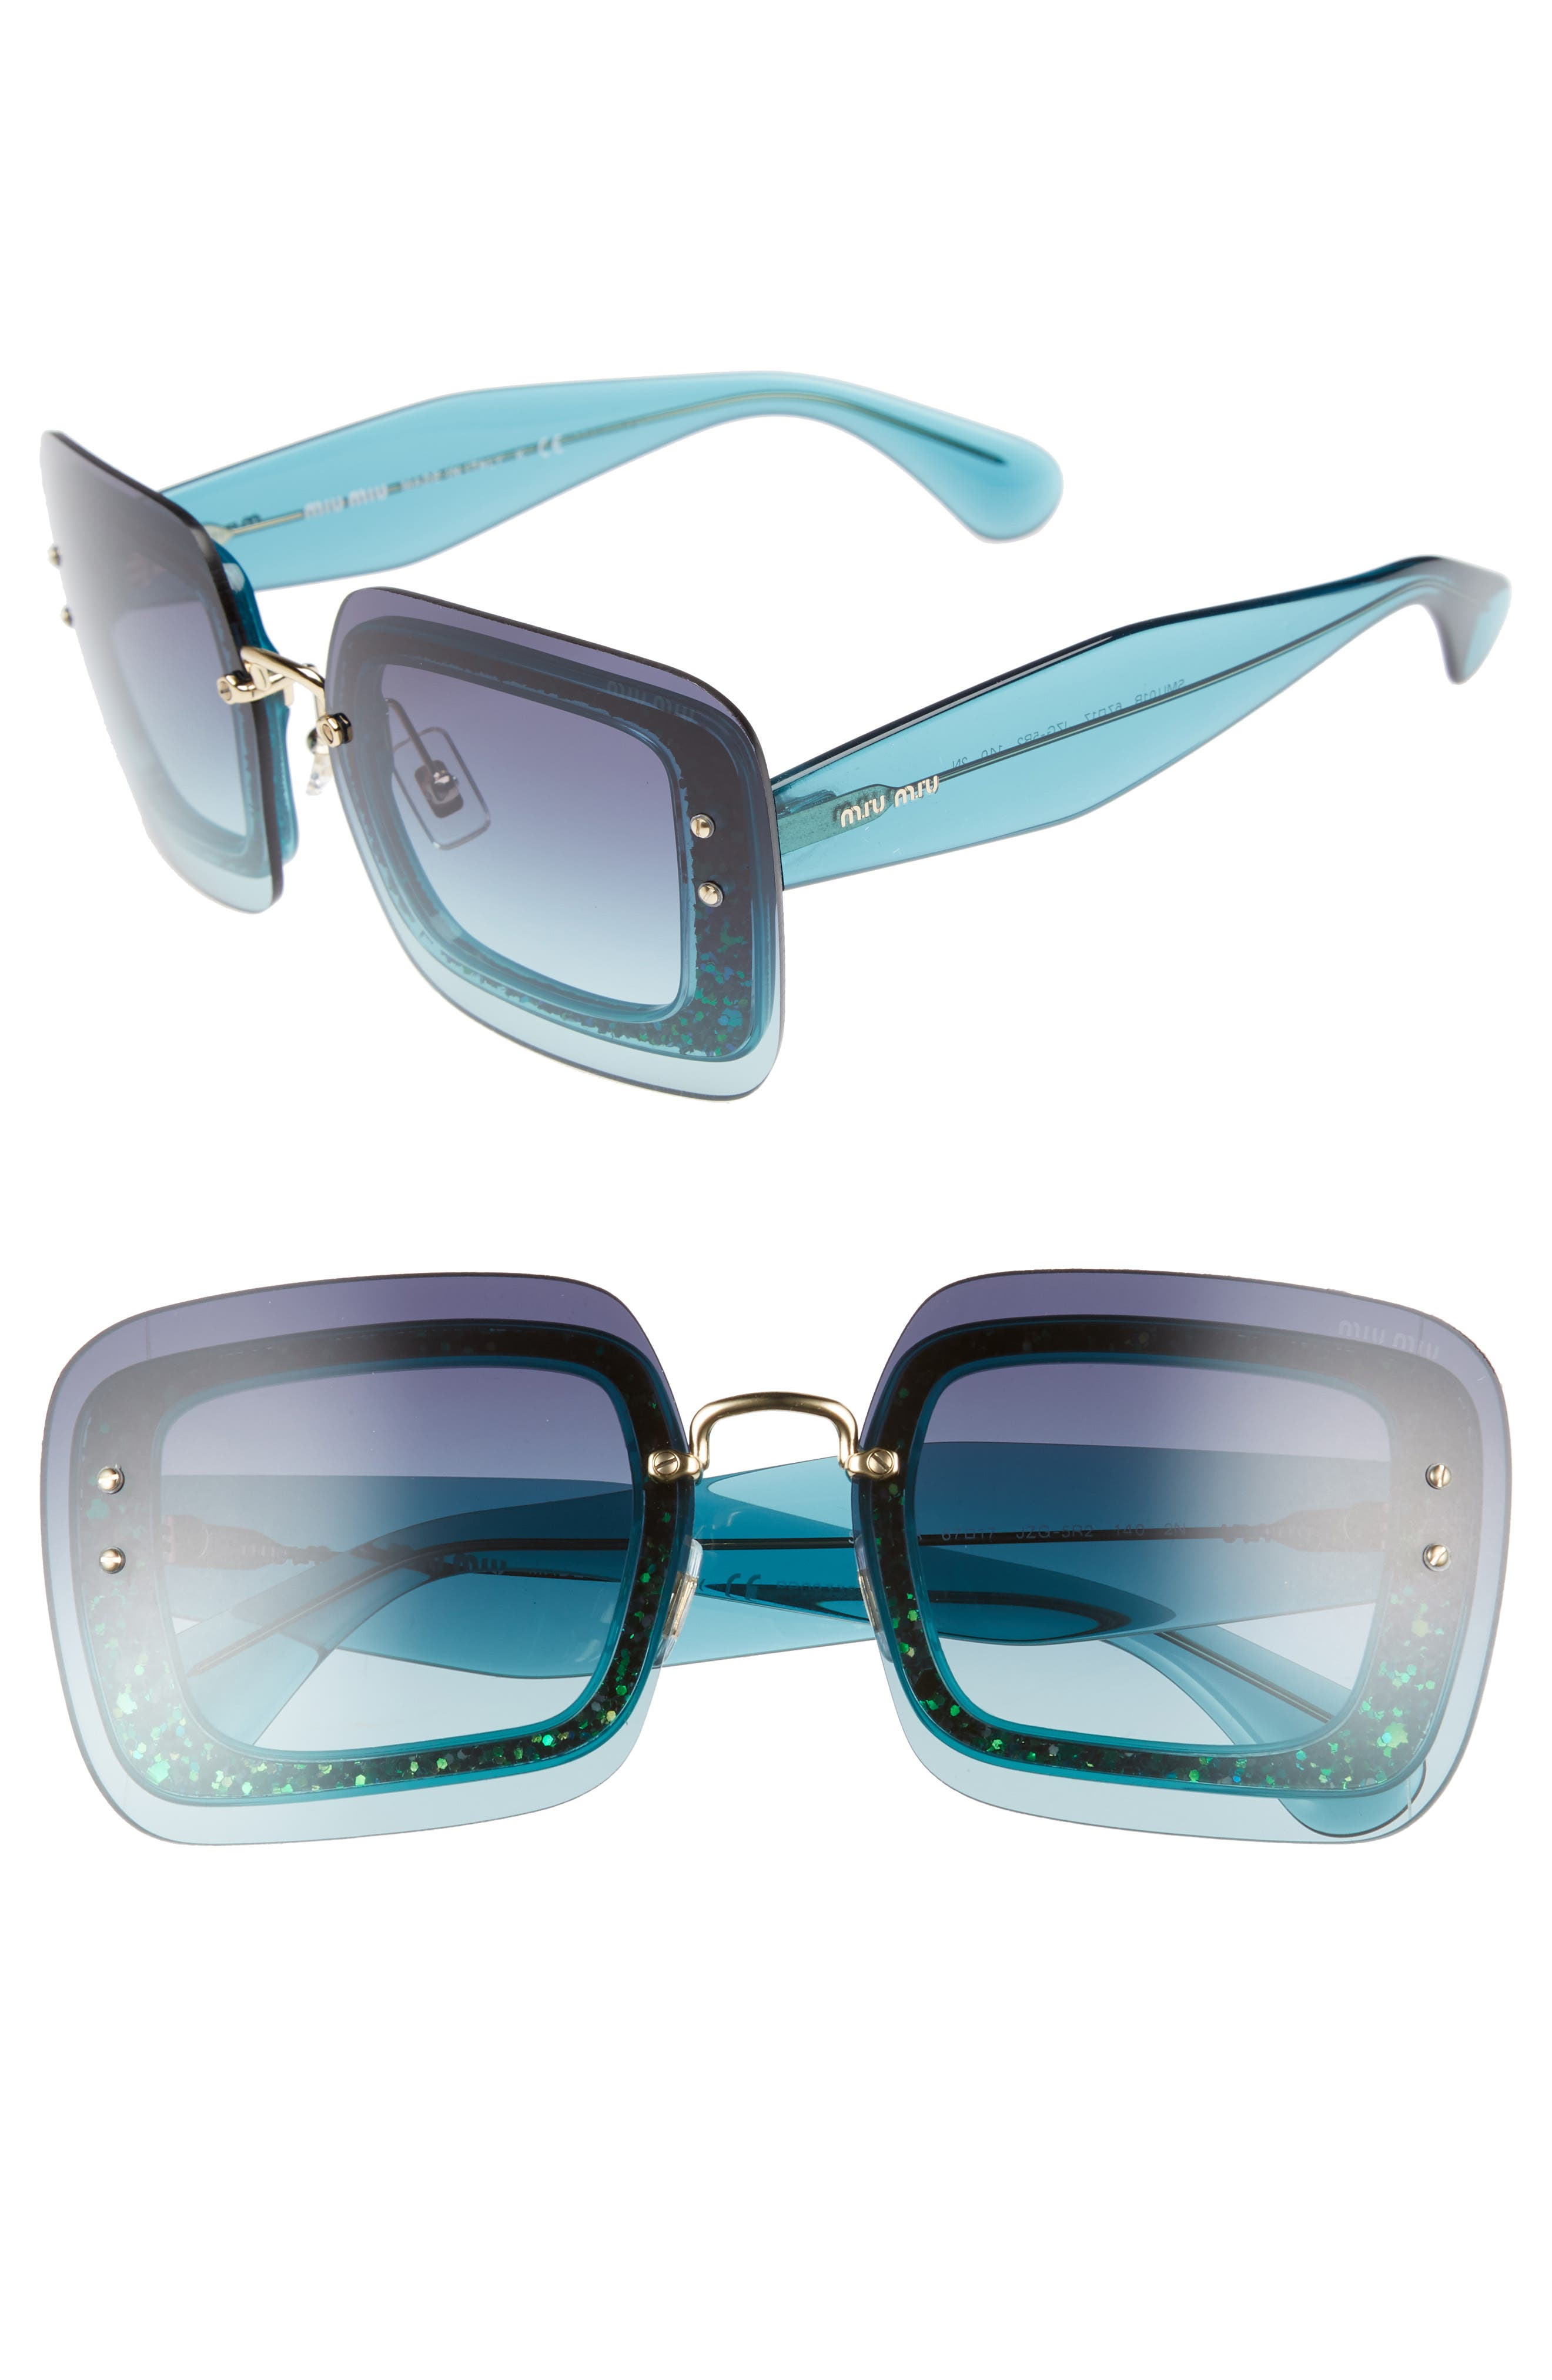 67mm Square Sunglasses,                             Main thumbnail 1, color,                             TURQUOISE GRADIENT